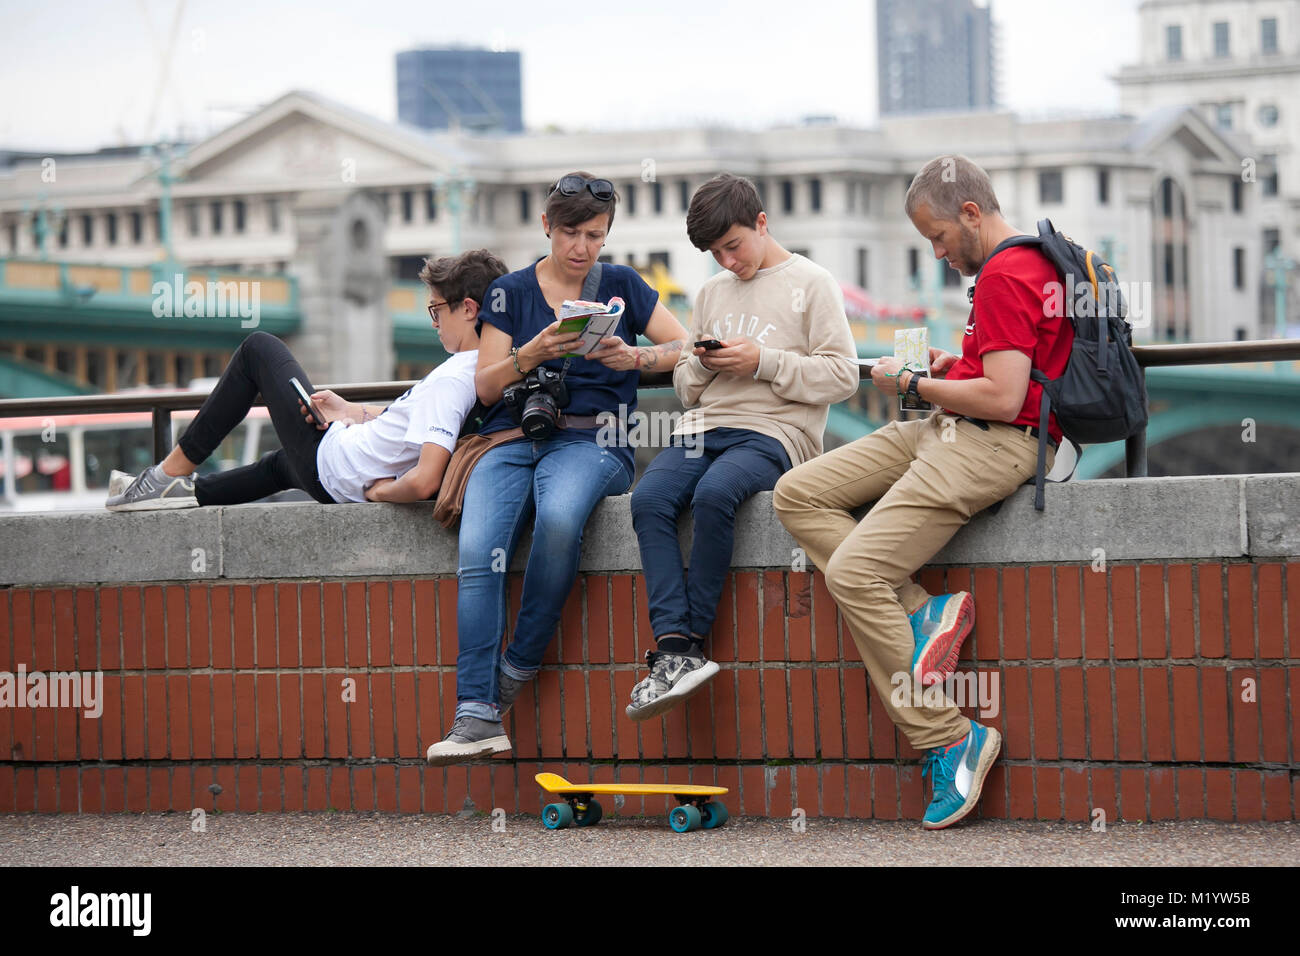 LONDON, ENGLAND - AUGUST 22, 2017 A family of tourists looking at a map against the background of the River Thames - Stock Image